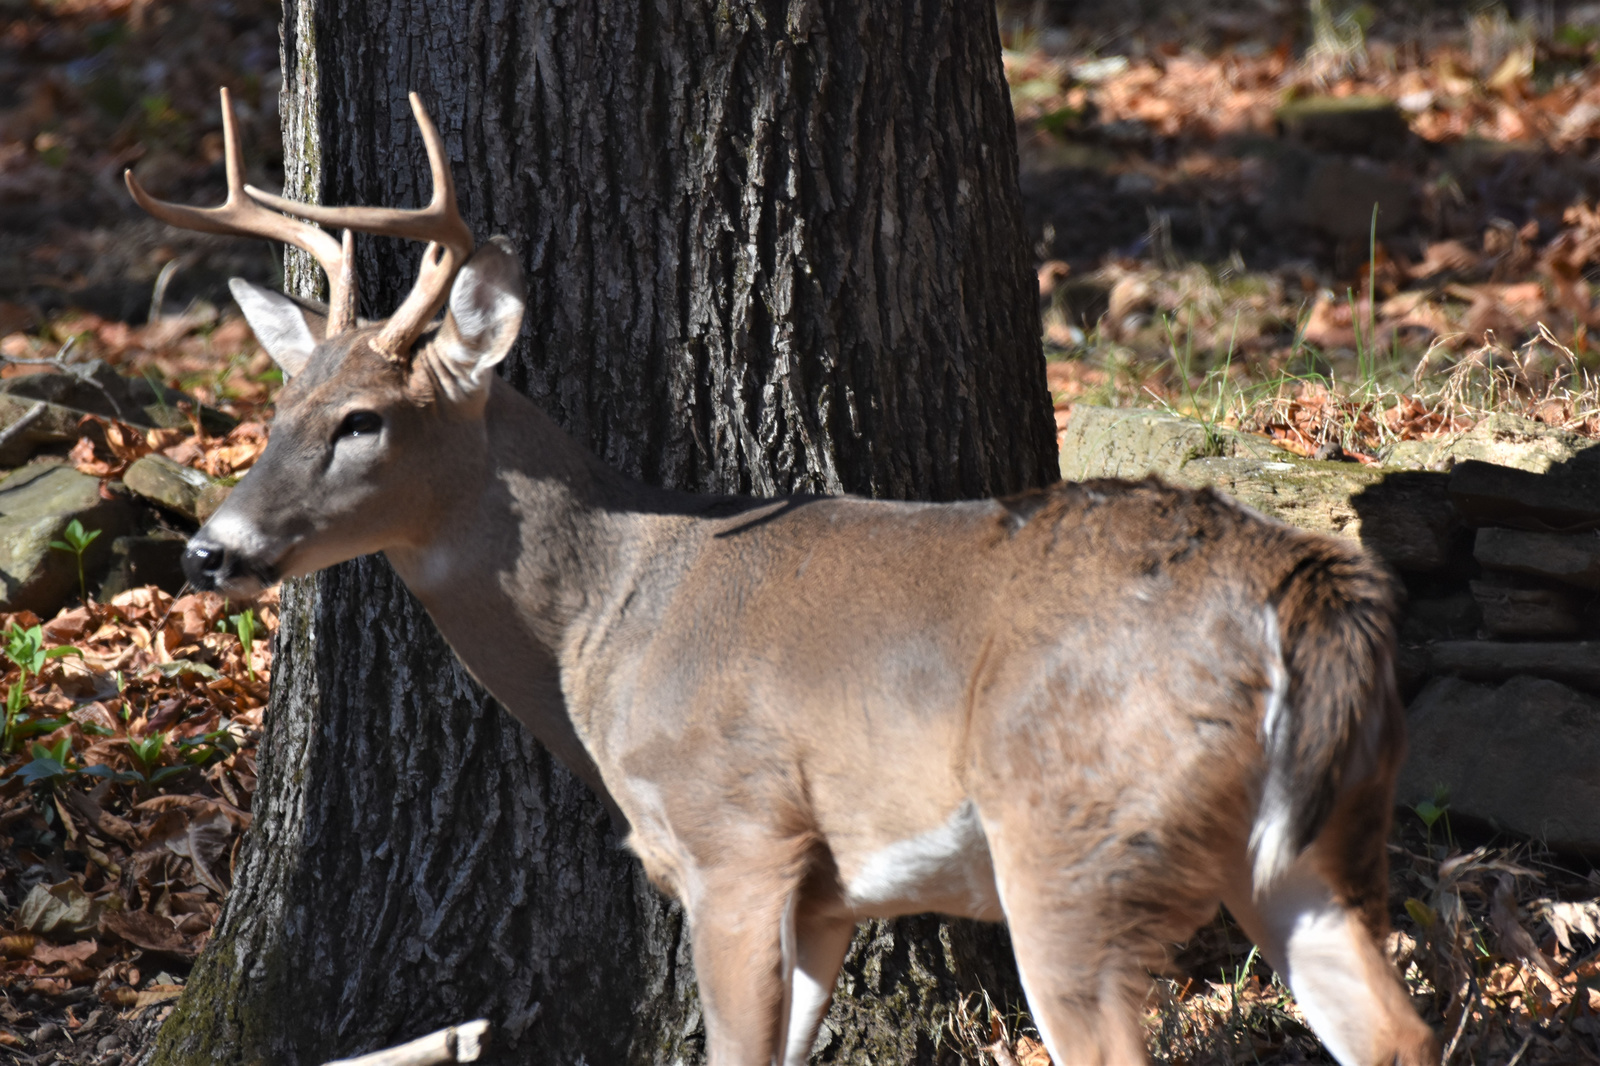 November 18, 2019 - Buck in Bent Tree